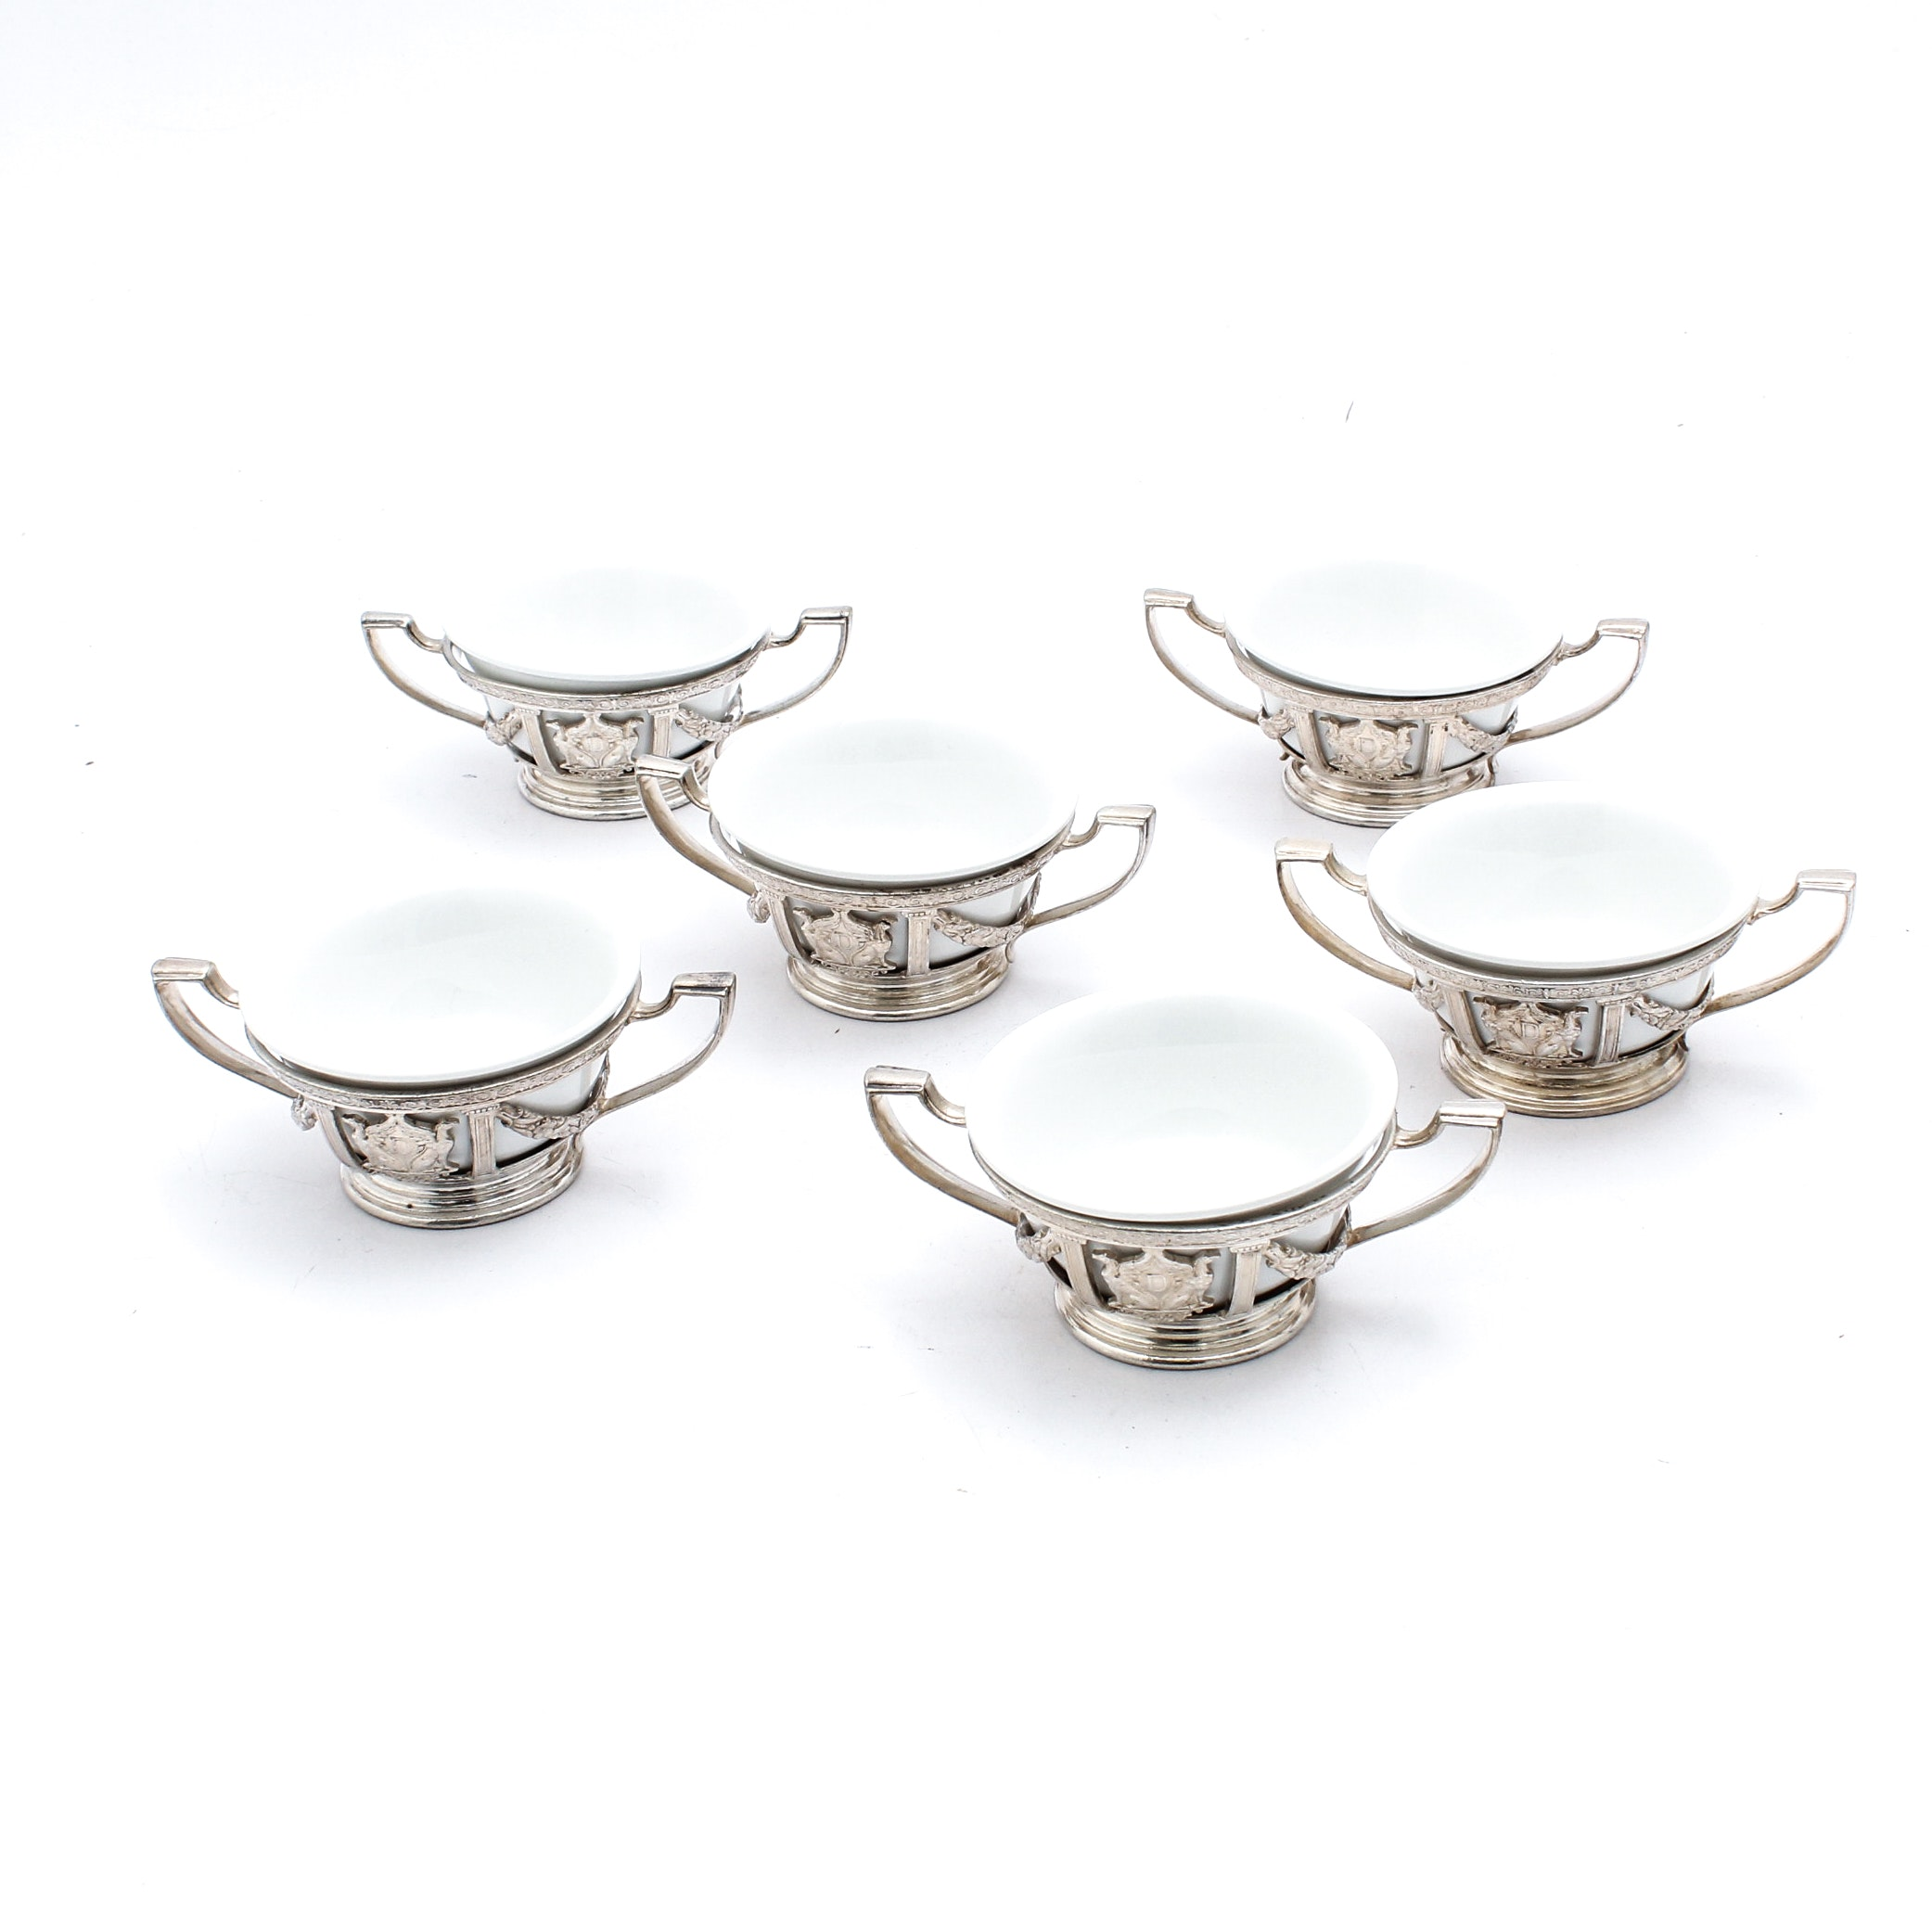 Silver Tone Metal Cream Soup Holder with Ceramic Inserts